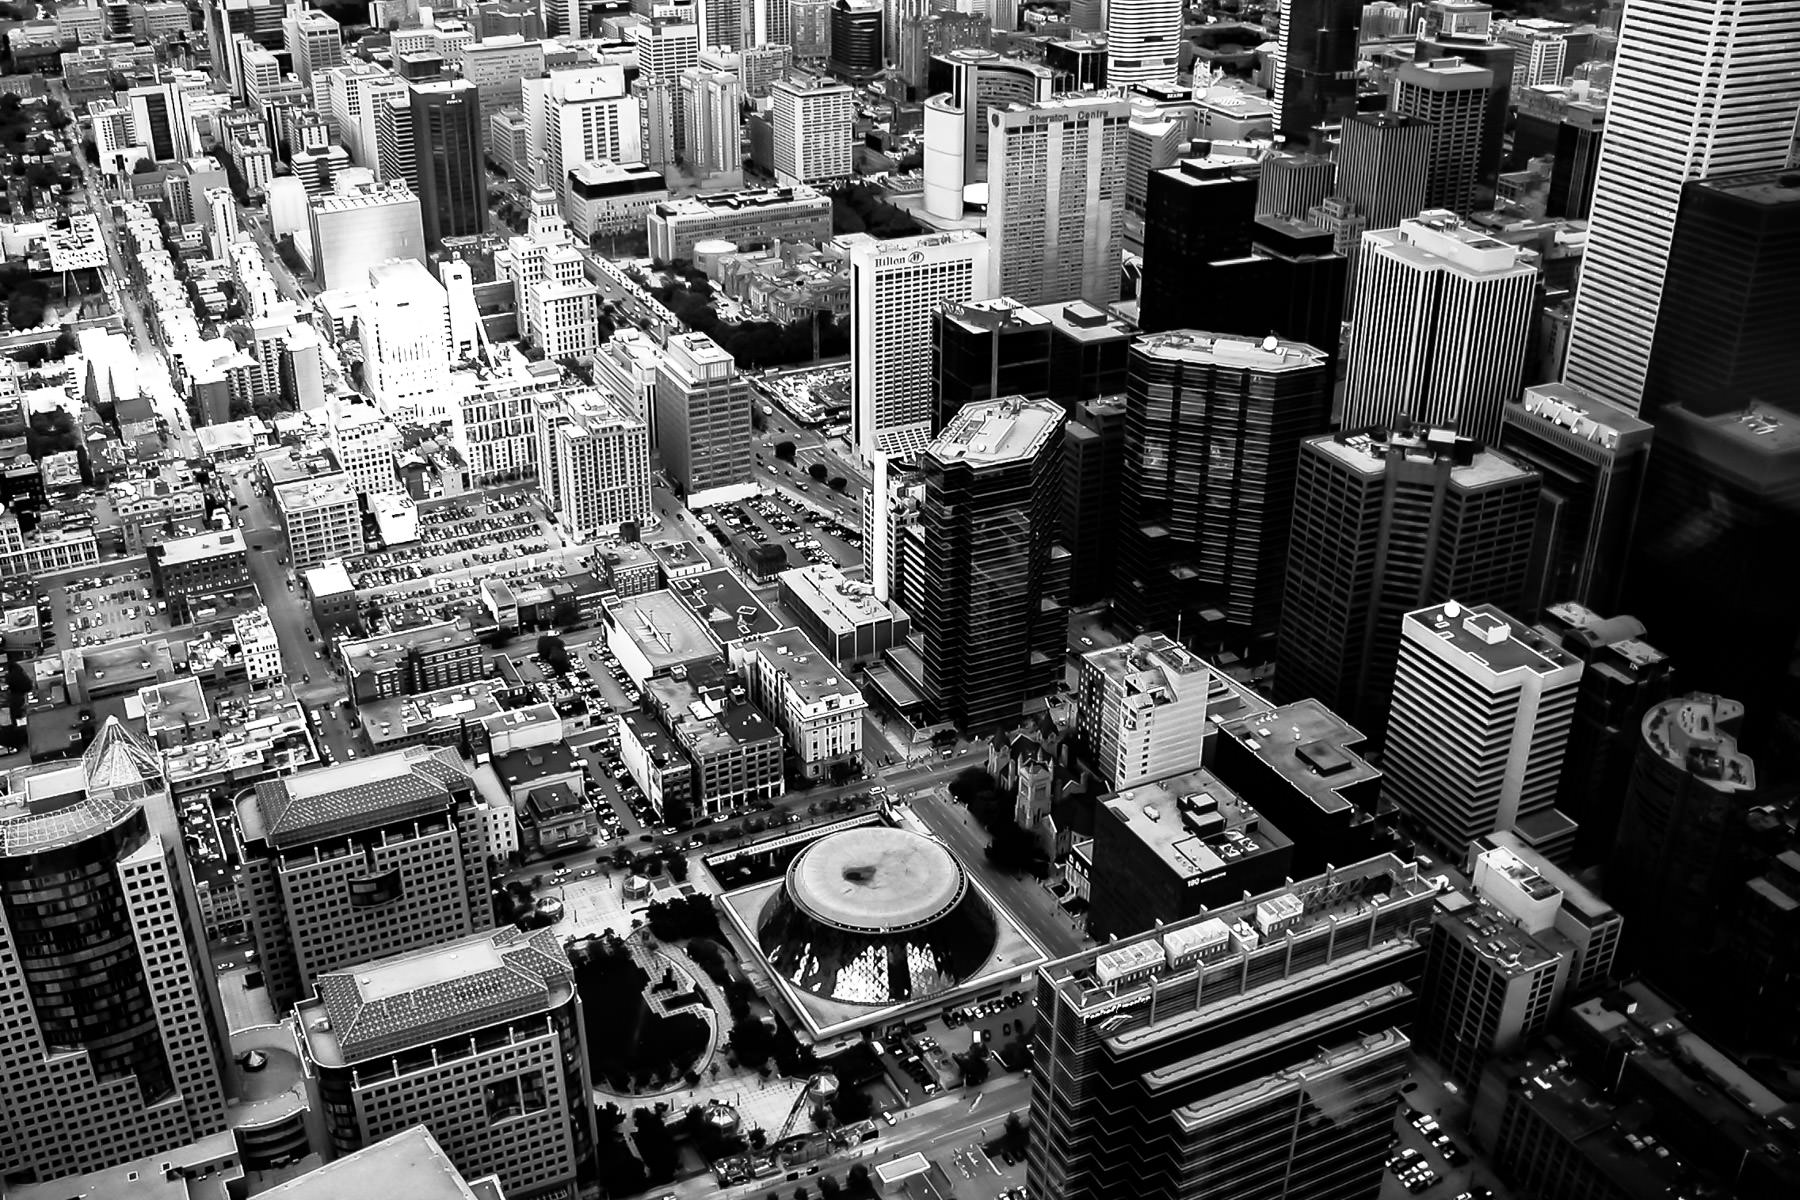 Roy Thomson Hall and the surrounding environs of Downtown Toronto as seen from the CN Tower.